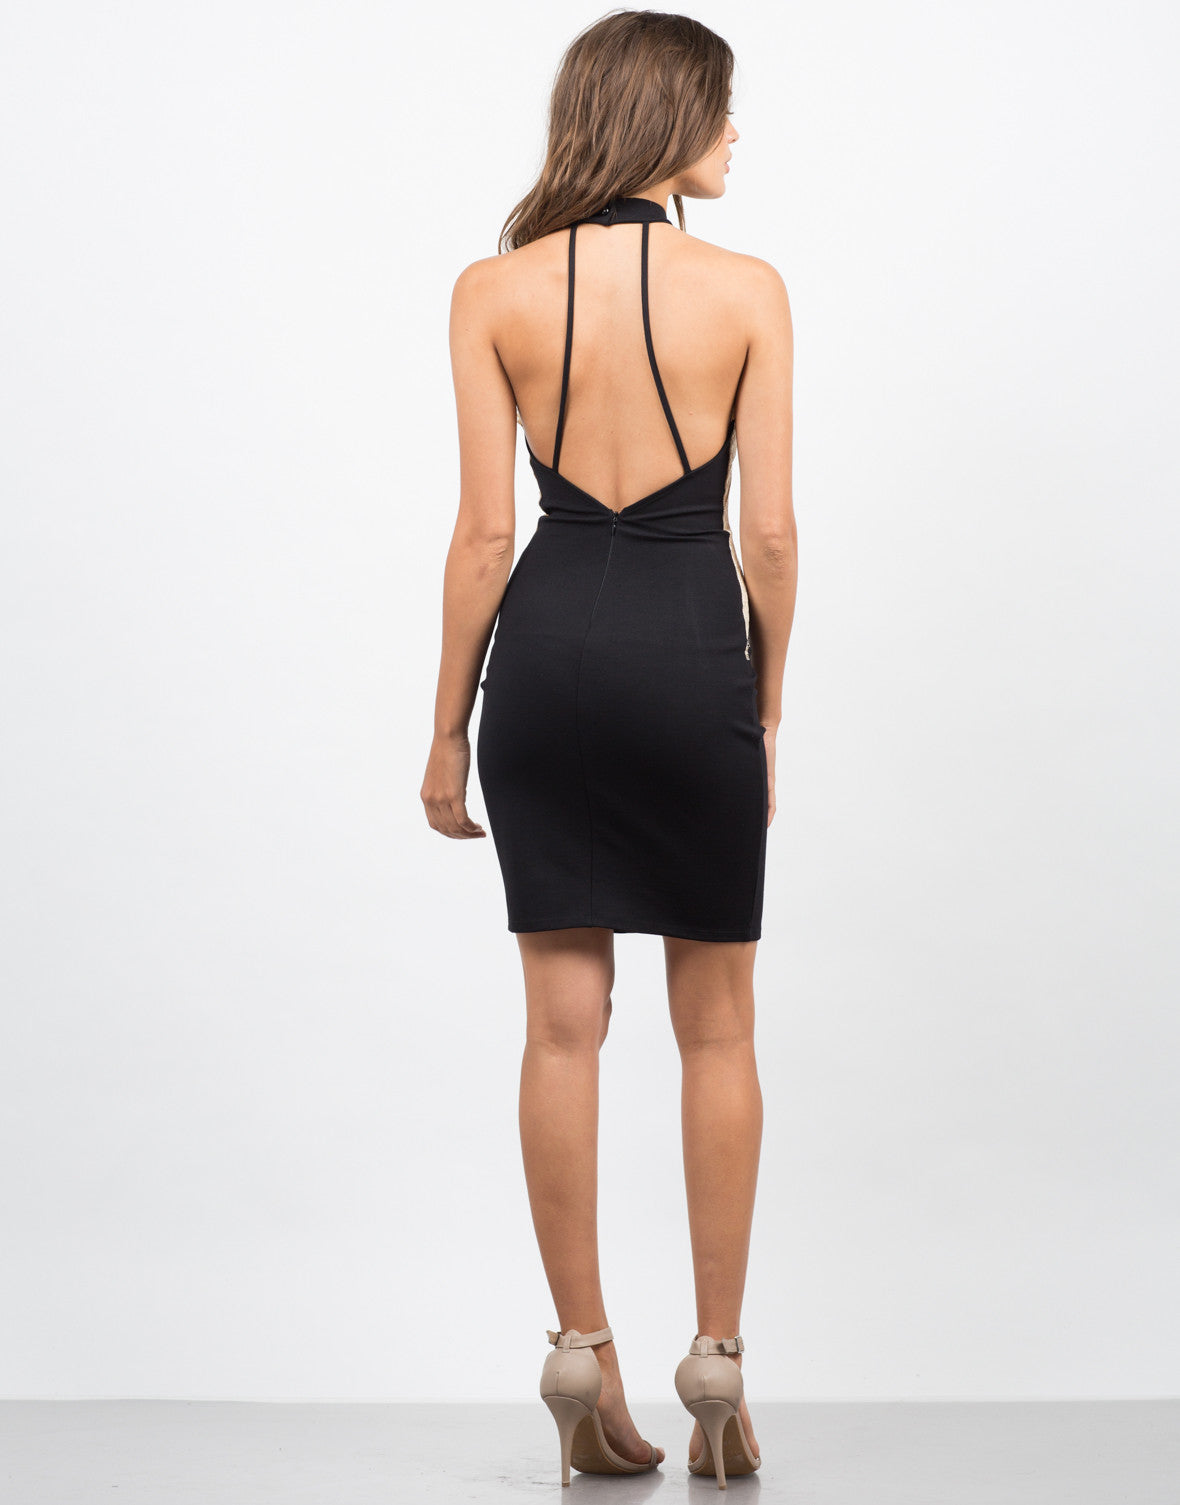 Back View of Lacey High Neck Party Dress